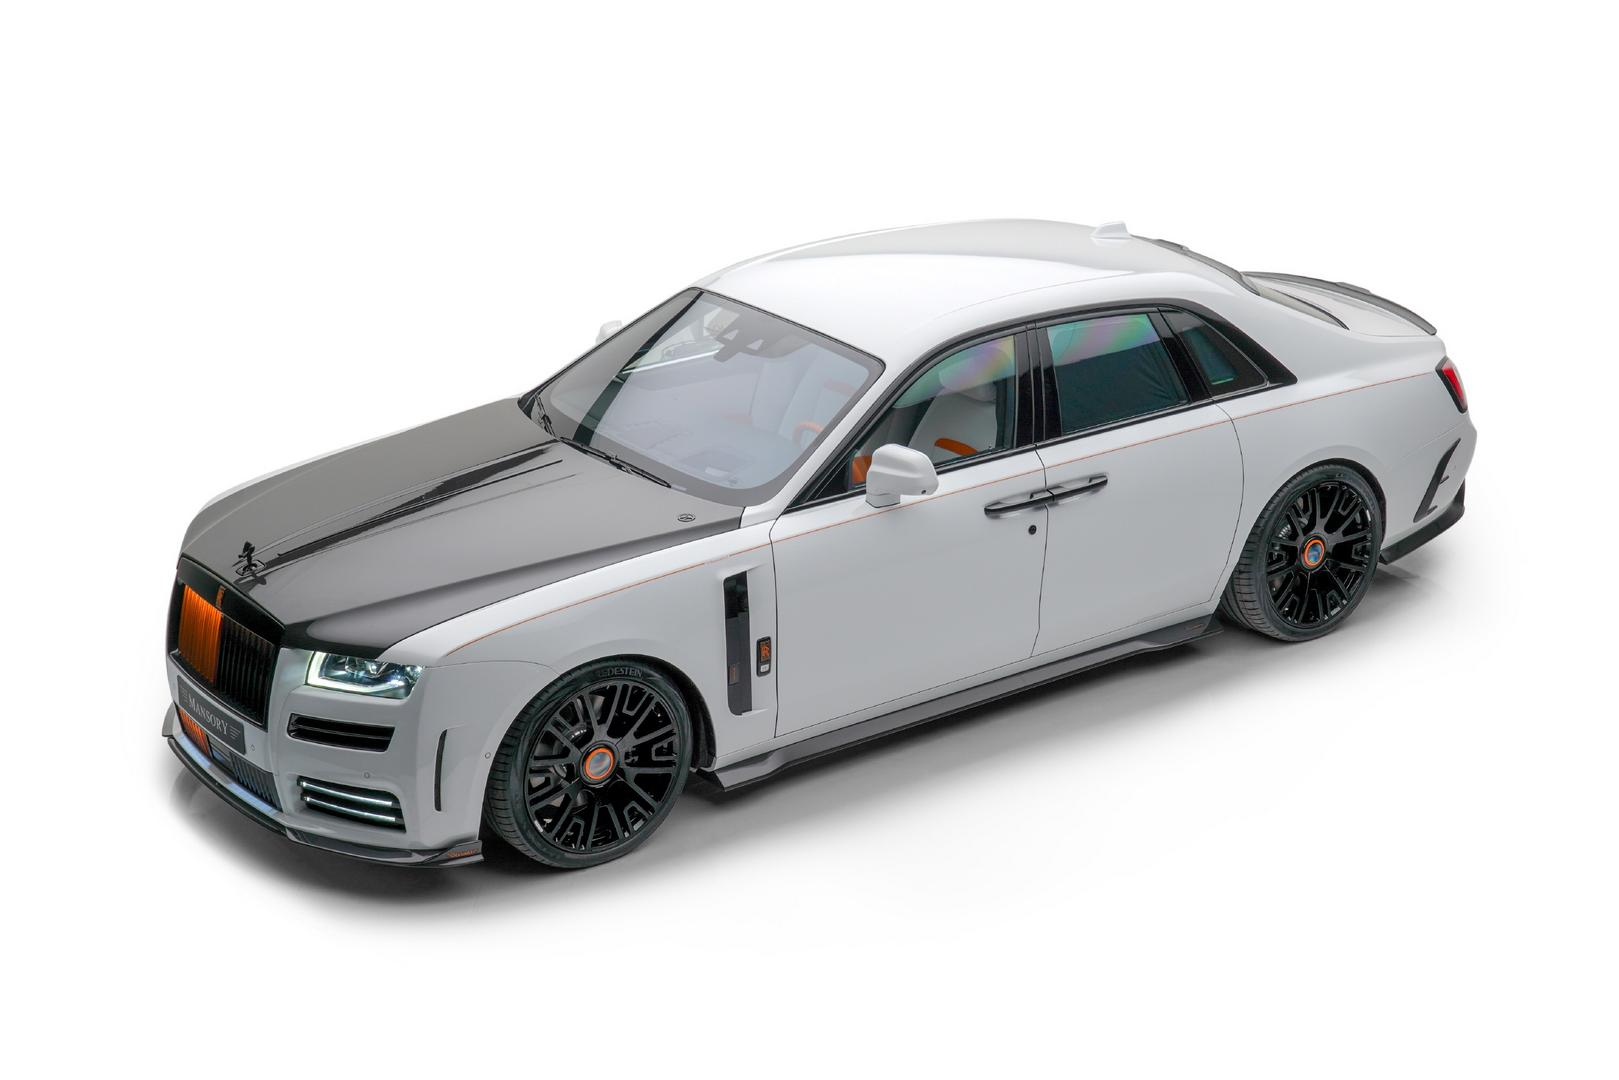 Mansory RR Ghost price